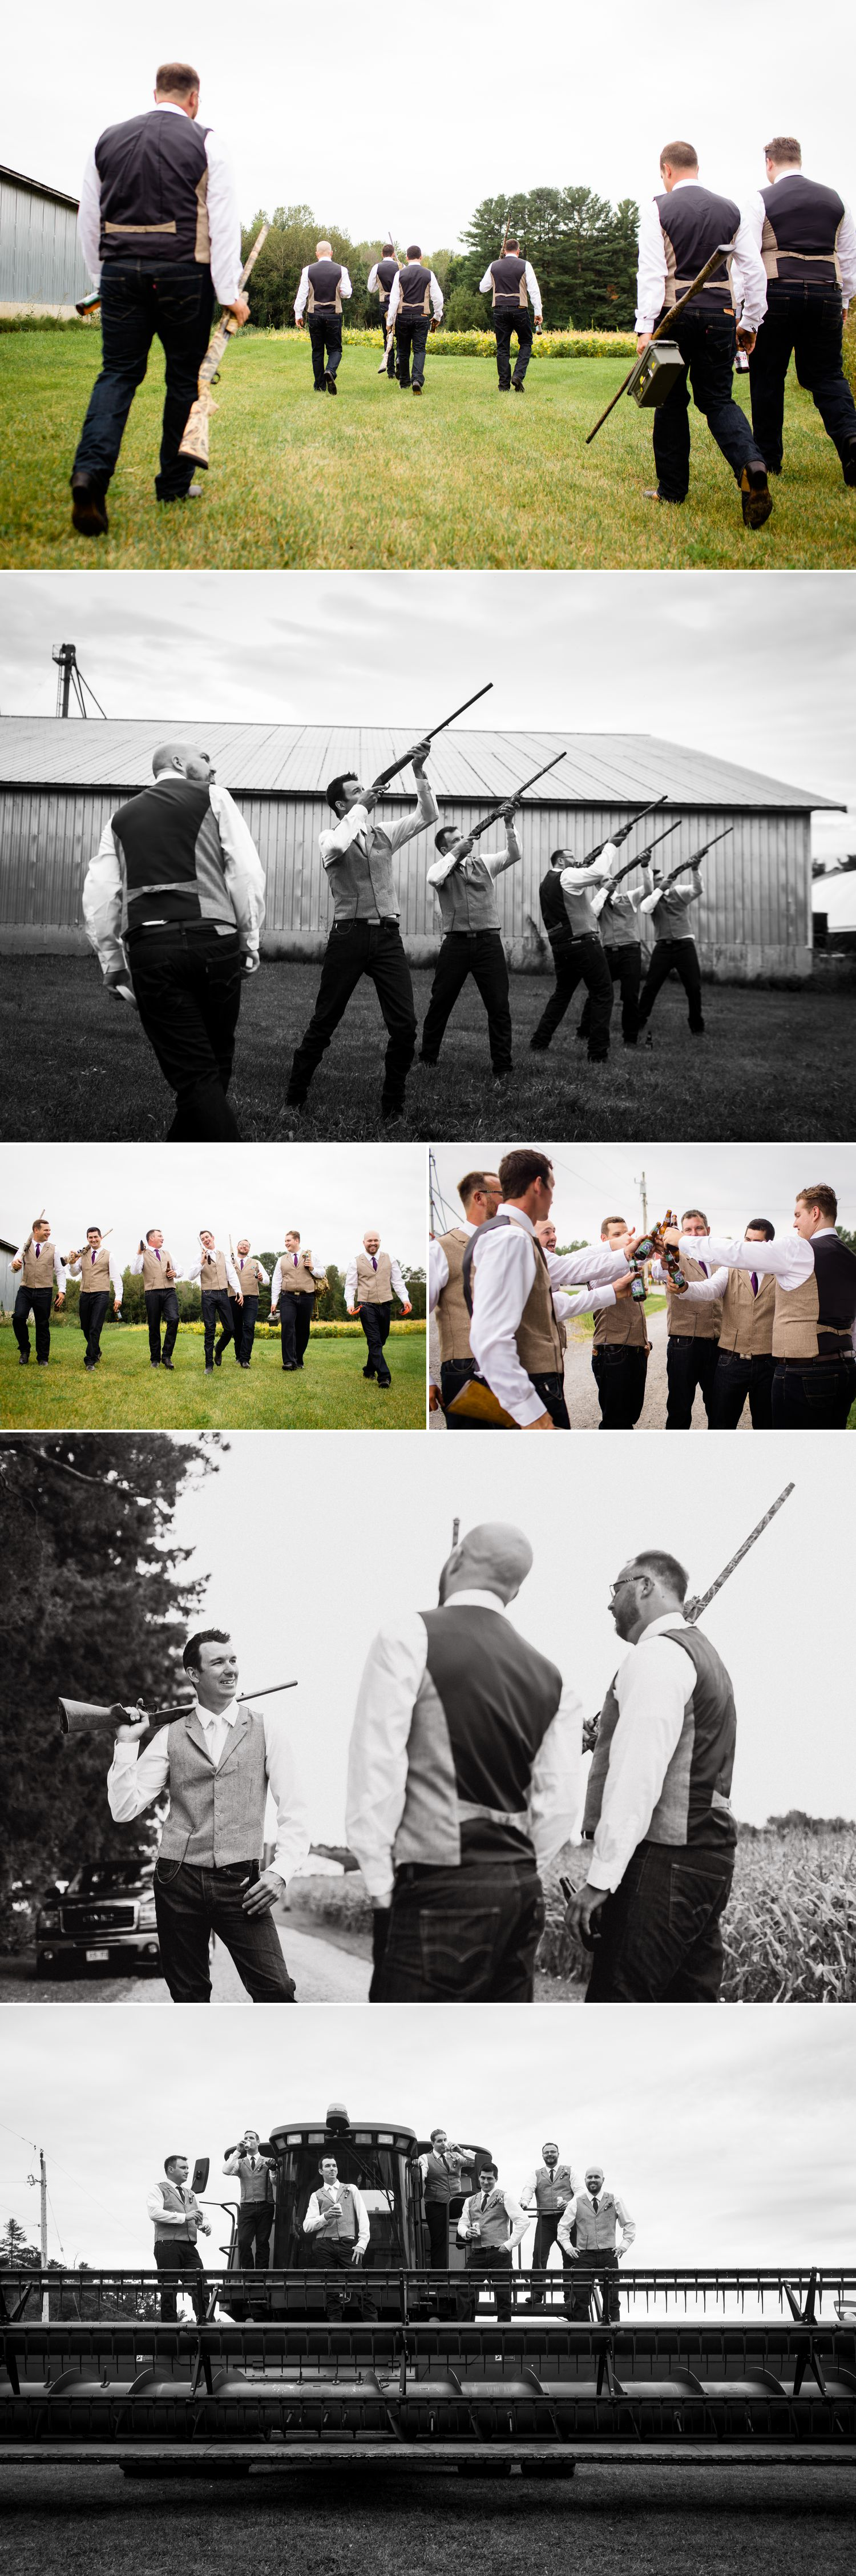 The groom and his groomsmen disk shooting before the wedding